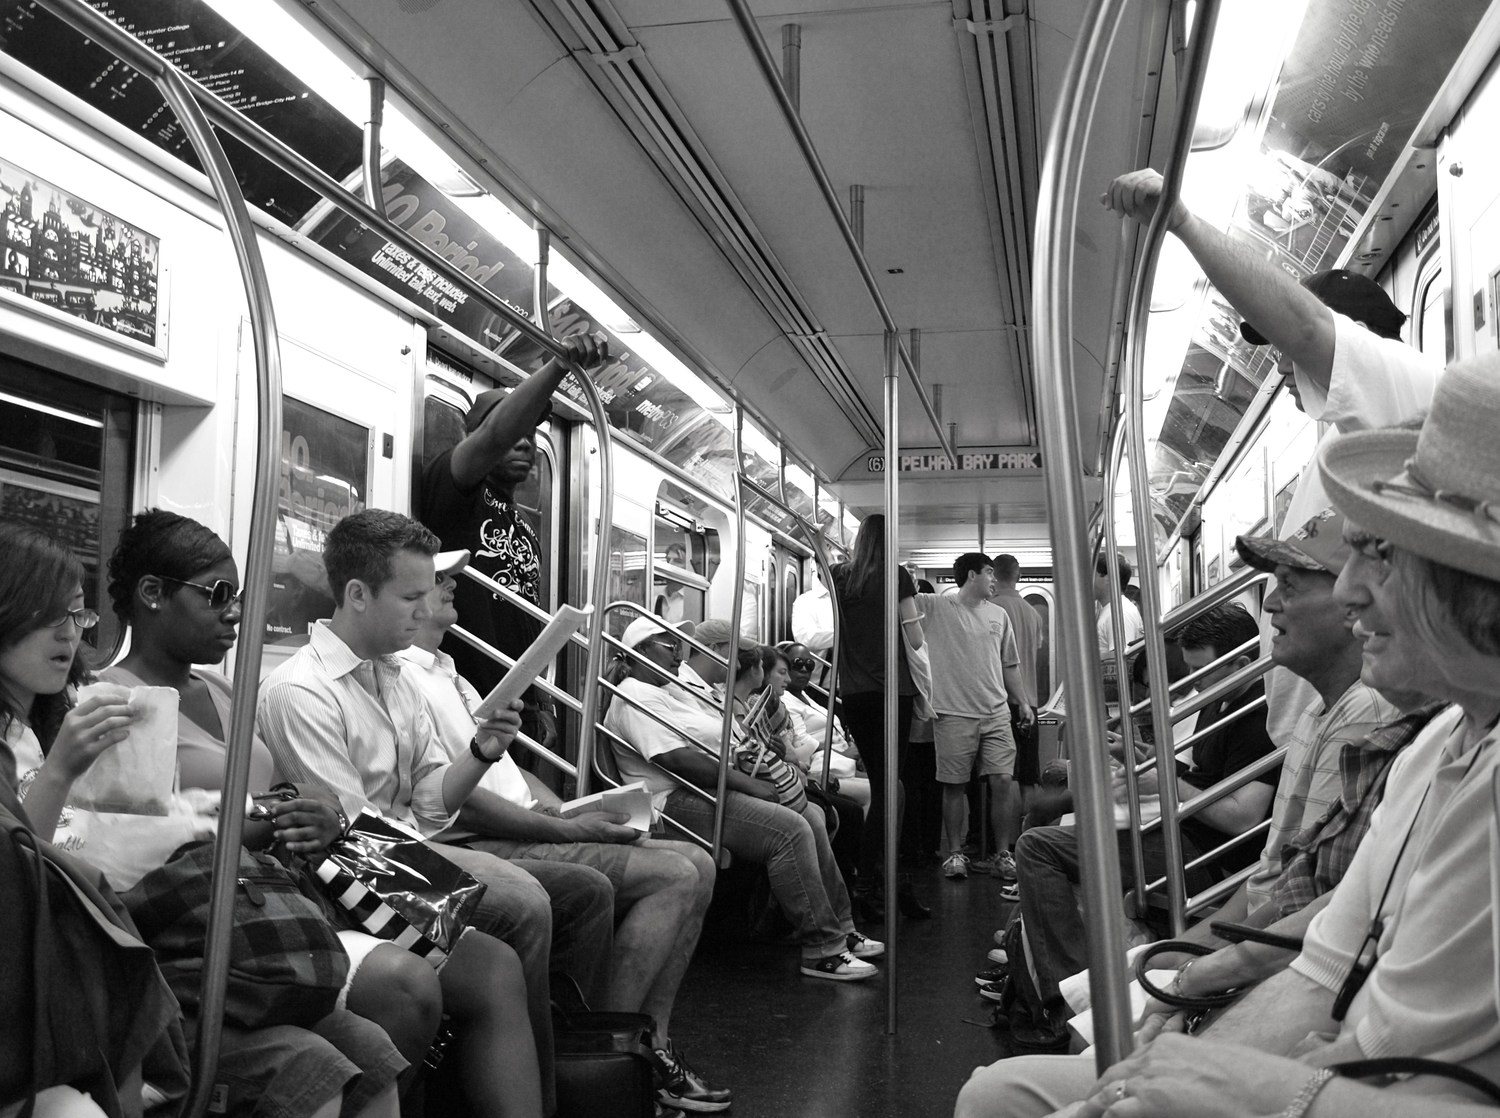 """riding the subway   <a href=""""http://www.kristinwalldesigns.com"""" rel=""""nofollow"""">www.kristinwalldesigns.com</a>"""